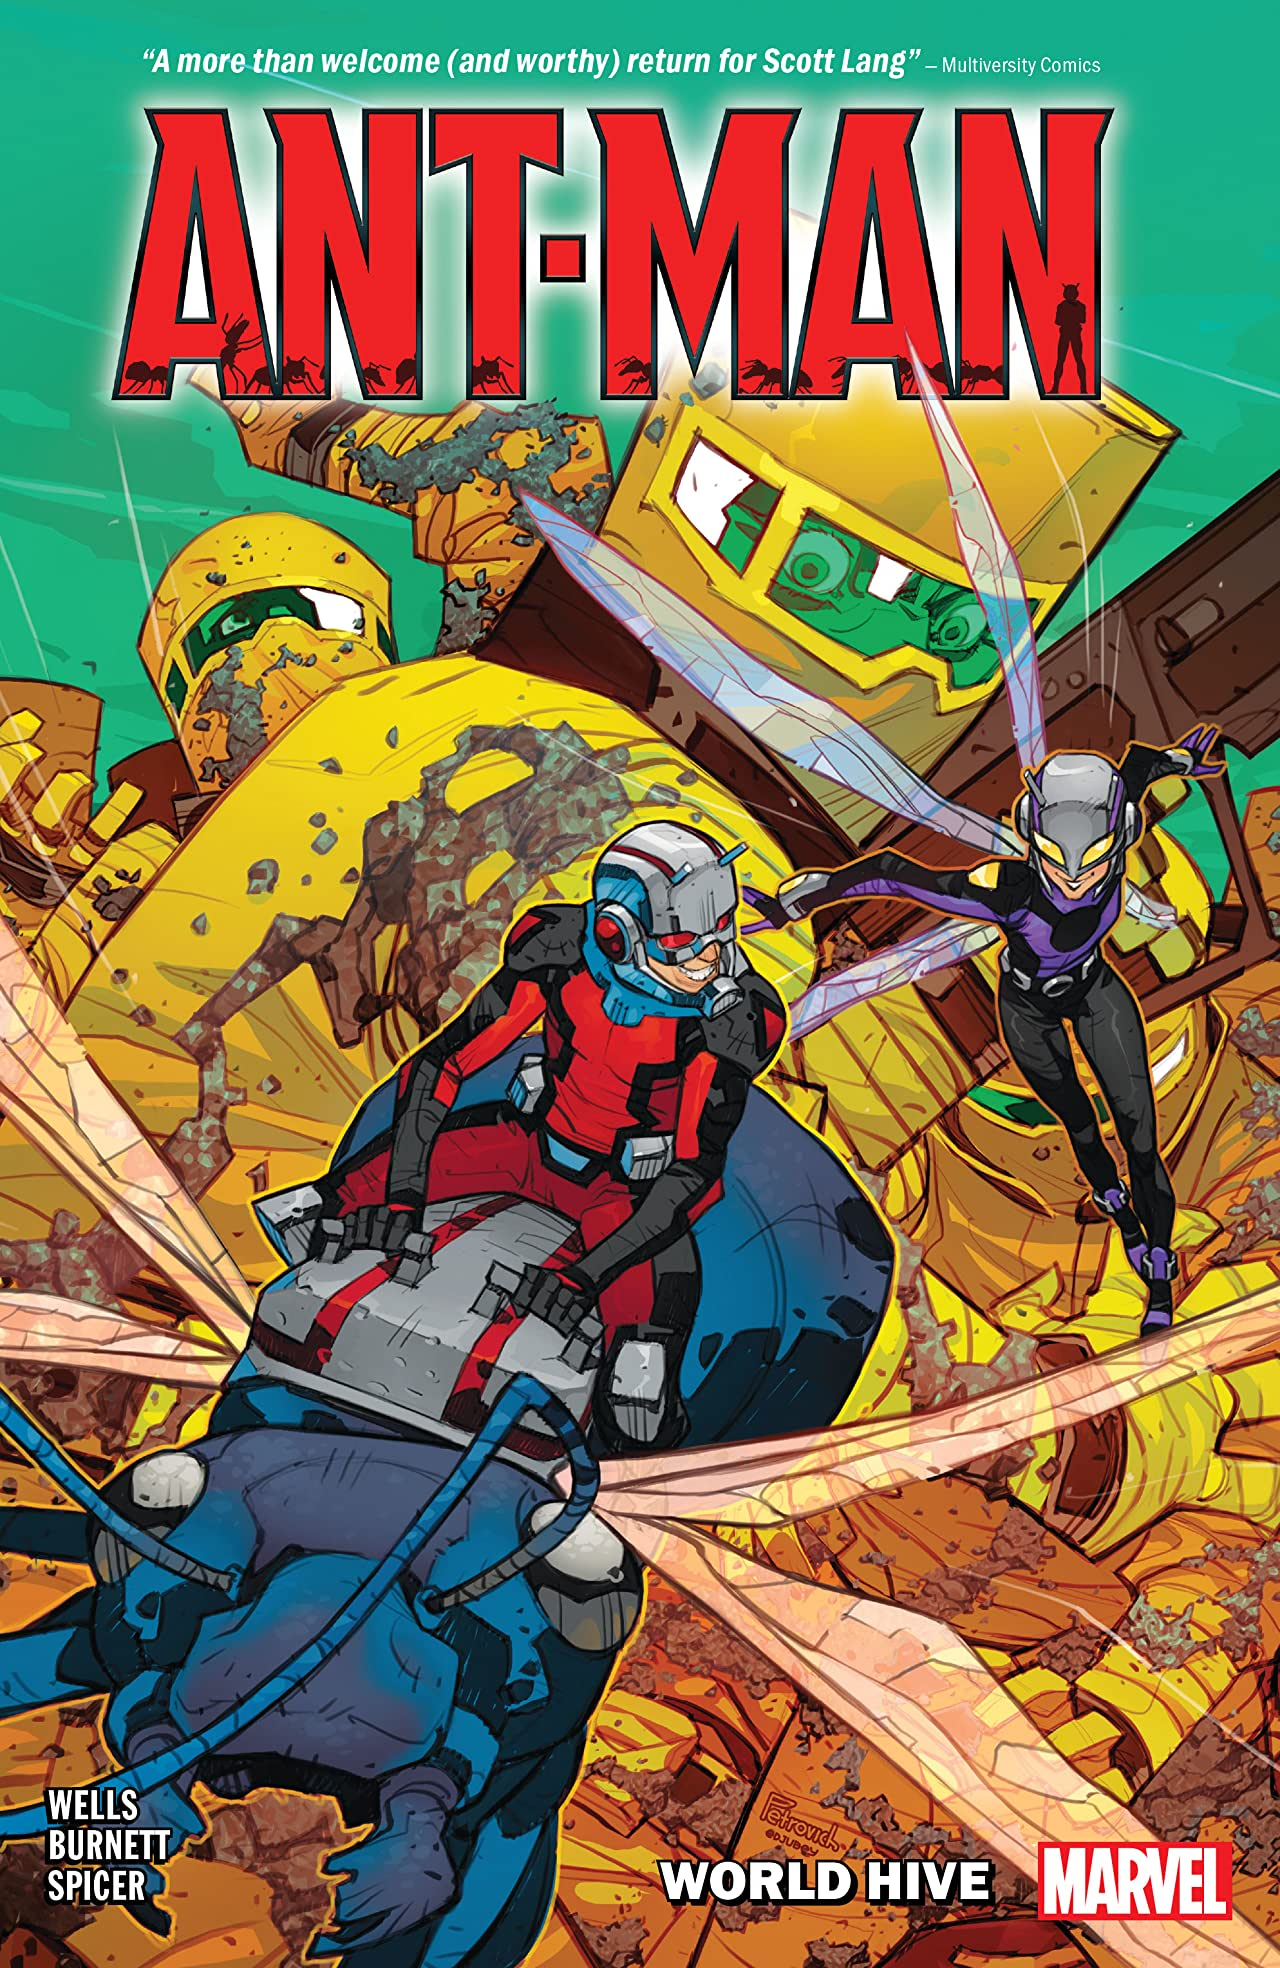 Ant-Man: World Hive